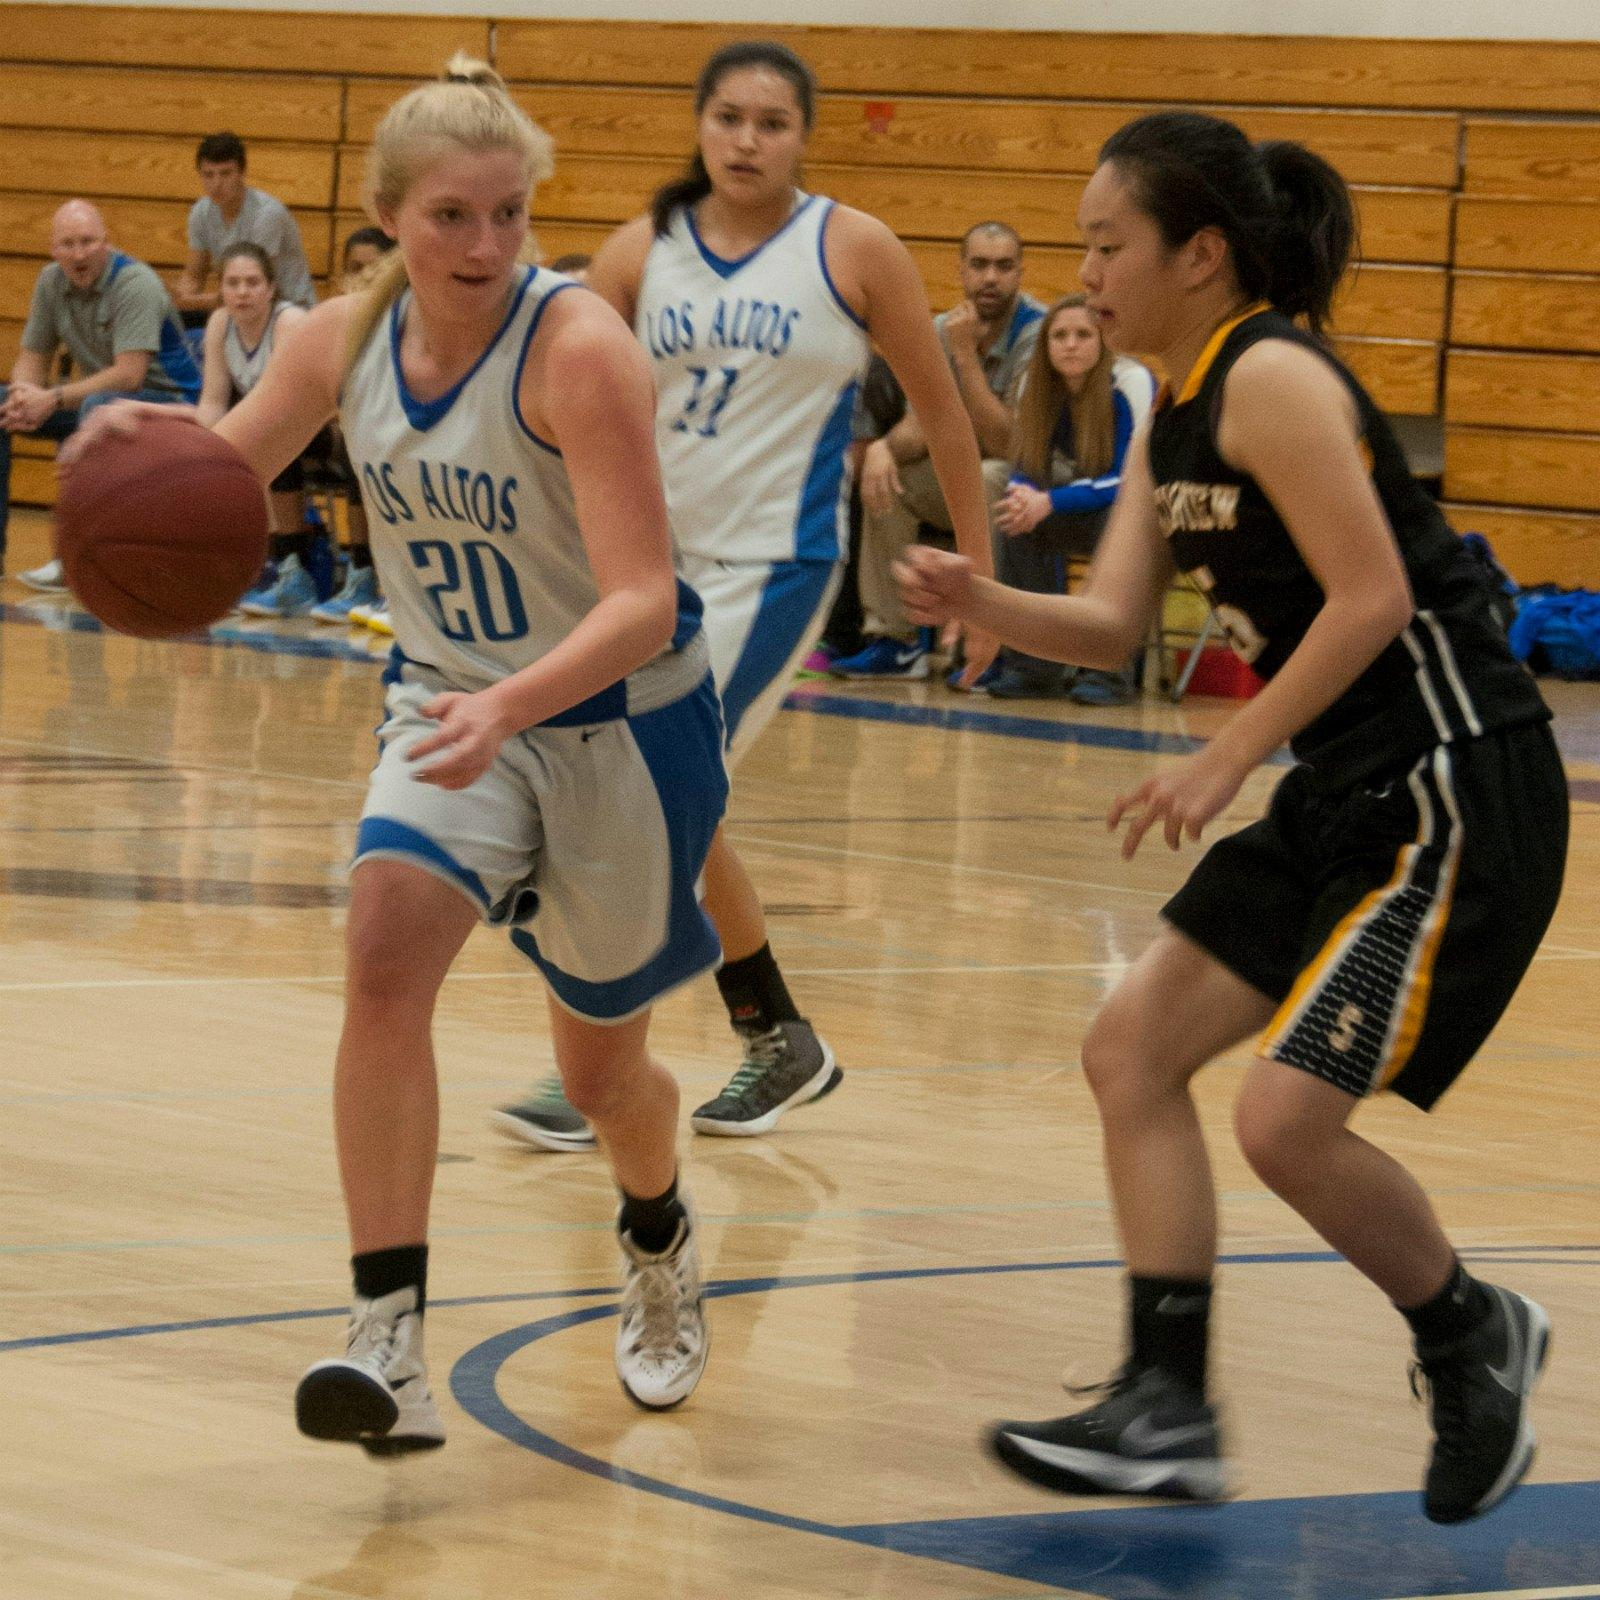 Senior Rachel Glein makes a drive toward the basket. Photo by Meilin Tsao.